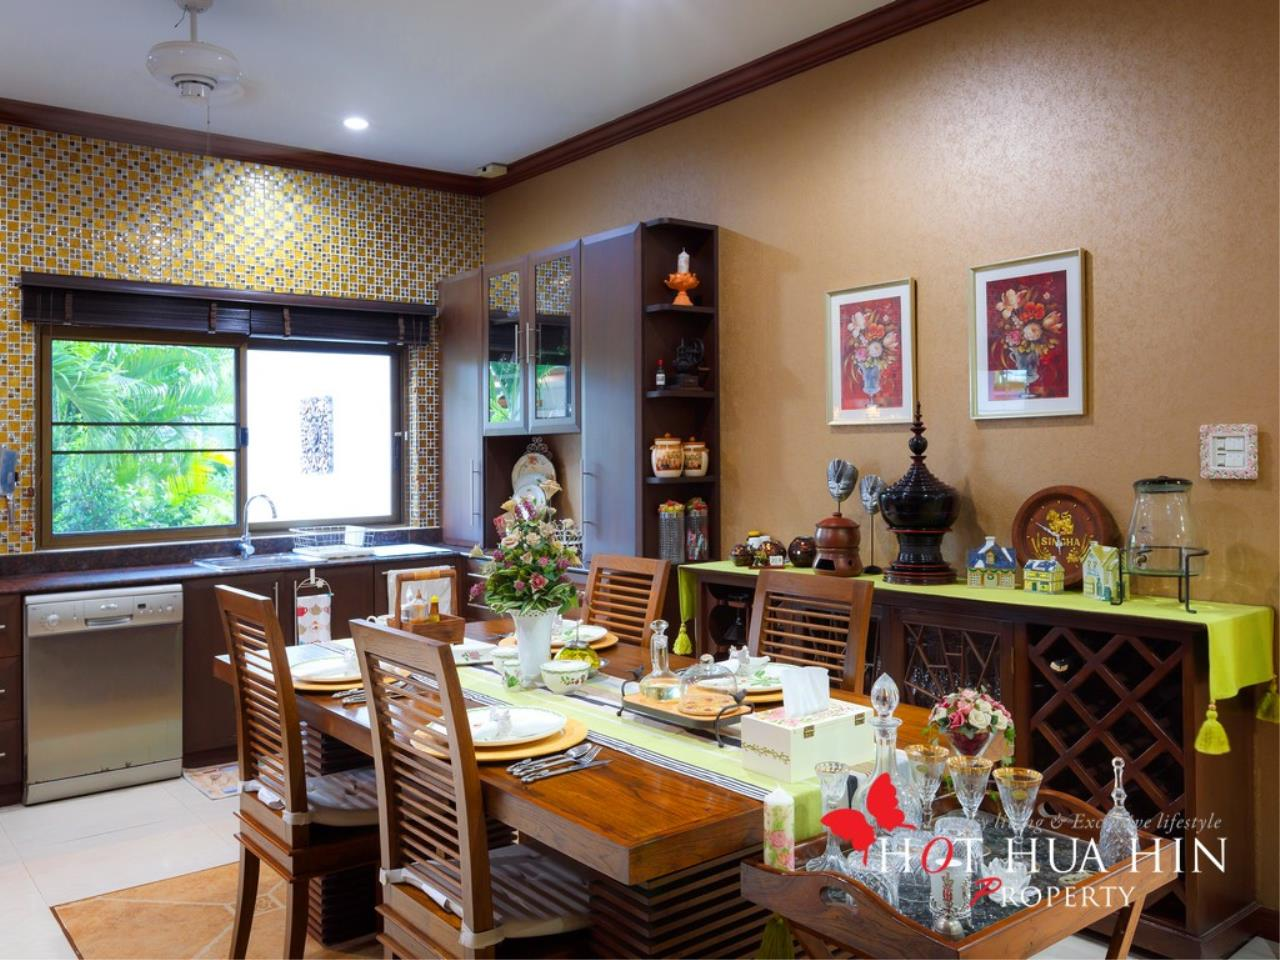 Hot Hua Hin Co. Ltd. Agency's Well Built Home With Stunning Gardens And Two Full Kitchens 6